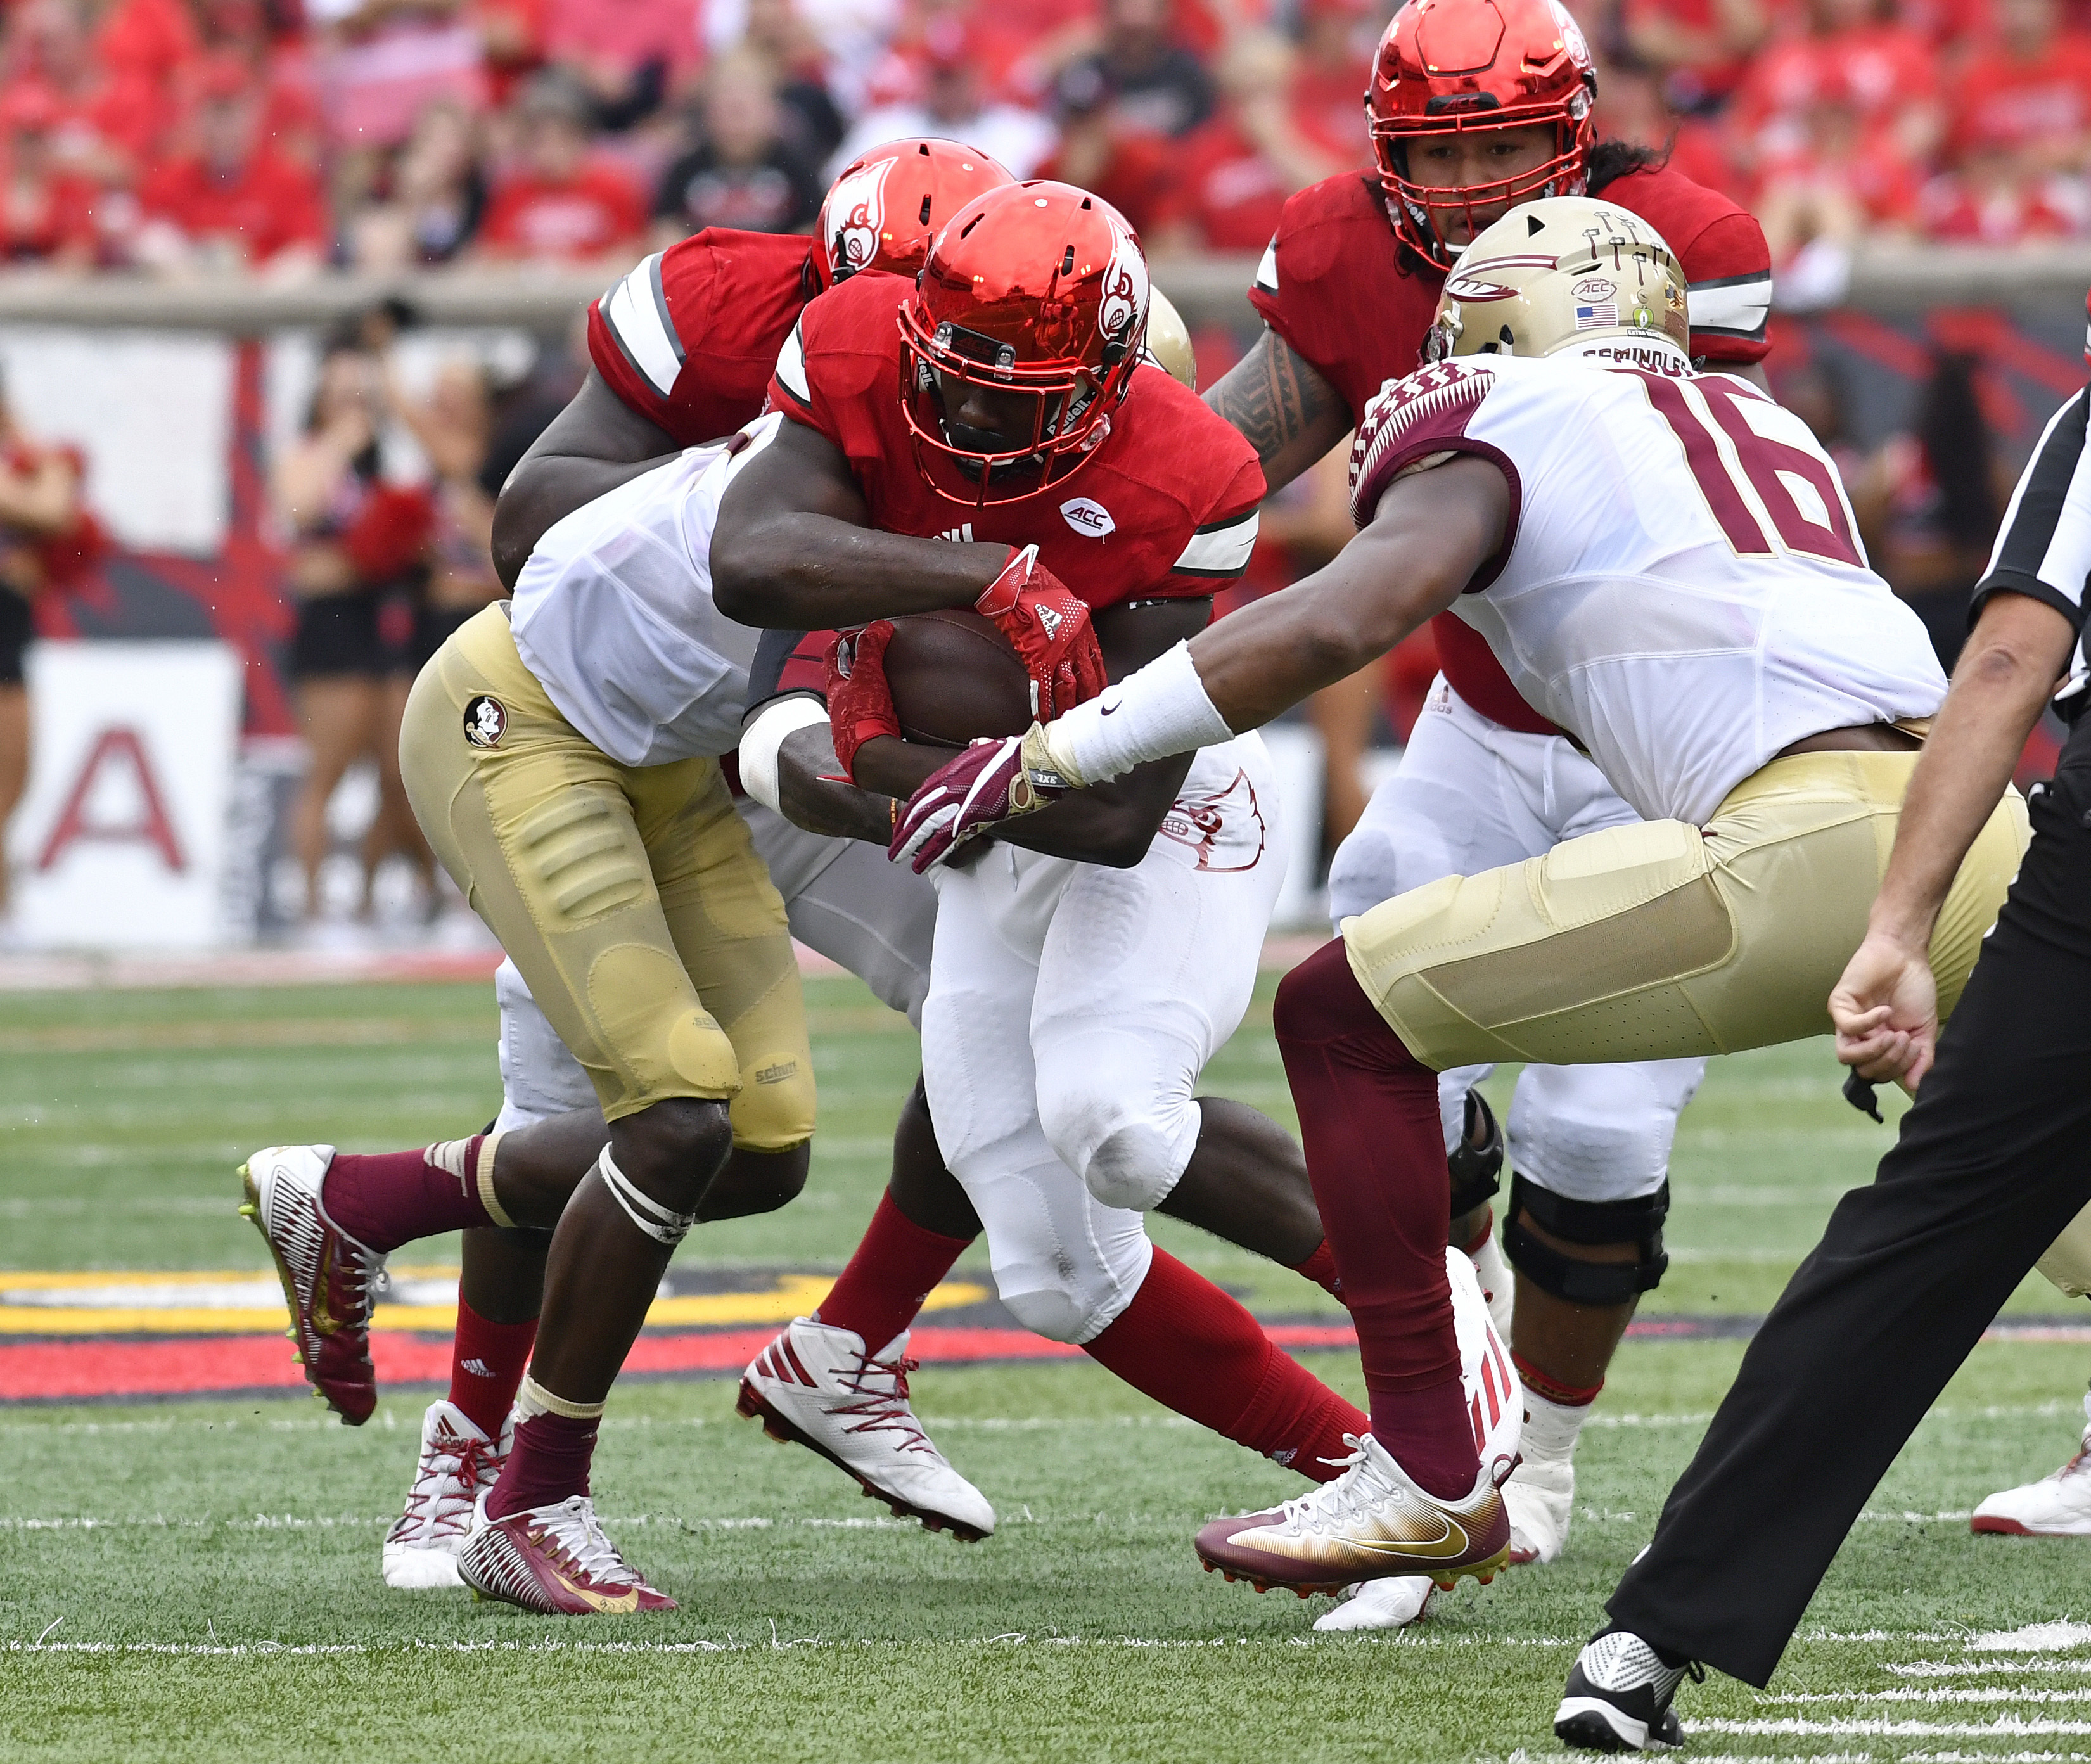 Louisville running back Brandon Radcliff (23) is hit by Florida State linebacker Jacob Pugh (16) and Matthew Thomas (6) during the first quarter of an NCAA college football game, Saturday, Sep. 17, 2016 in Louisville Ky. (AP Photo/Timothy D. Easley)